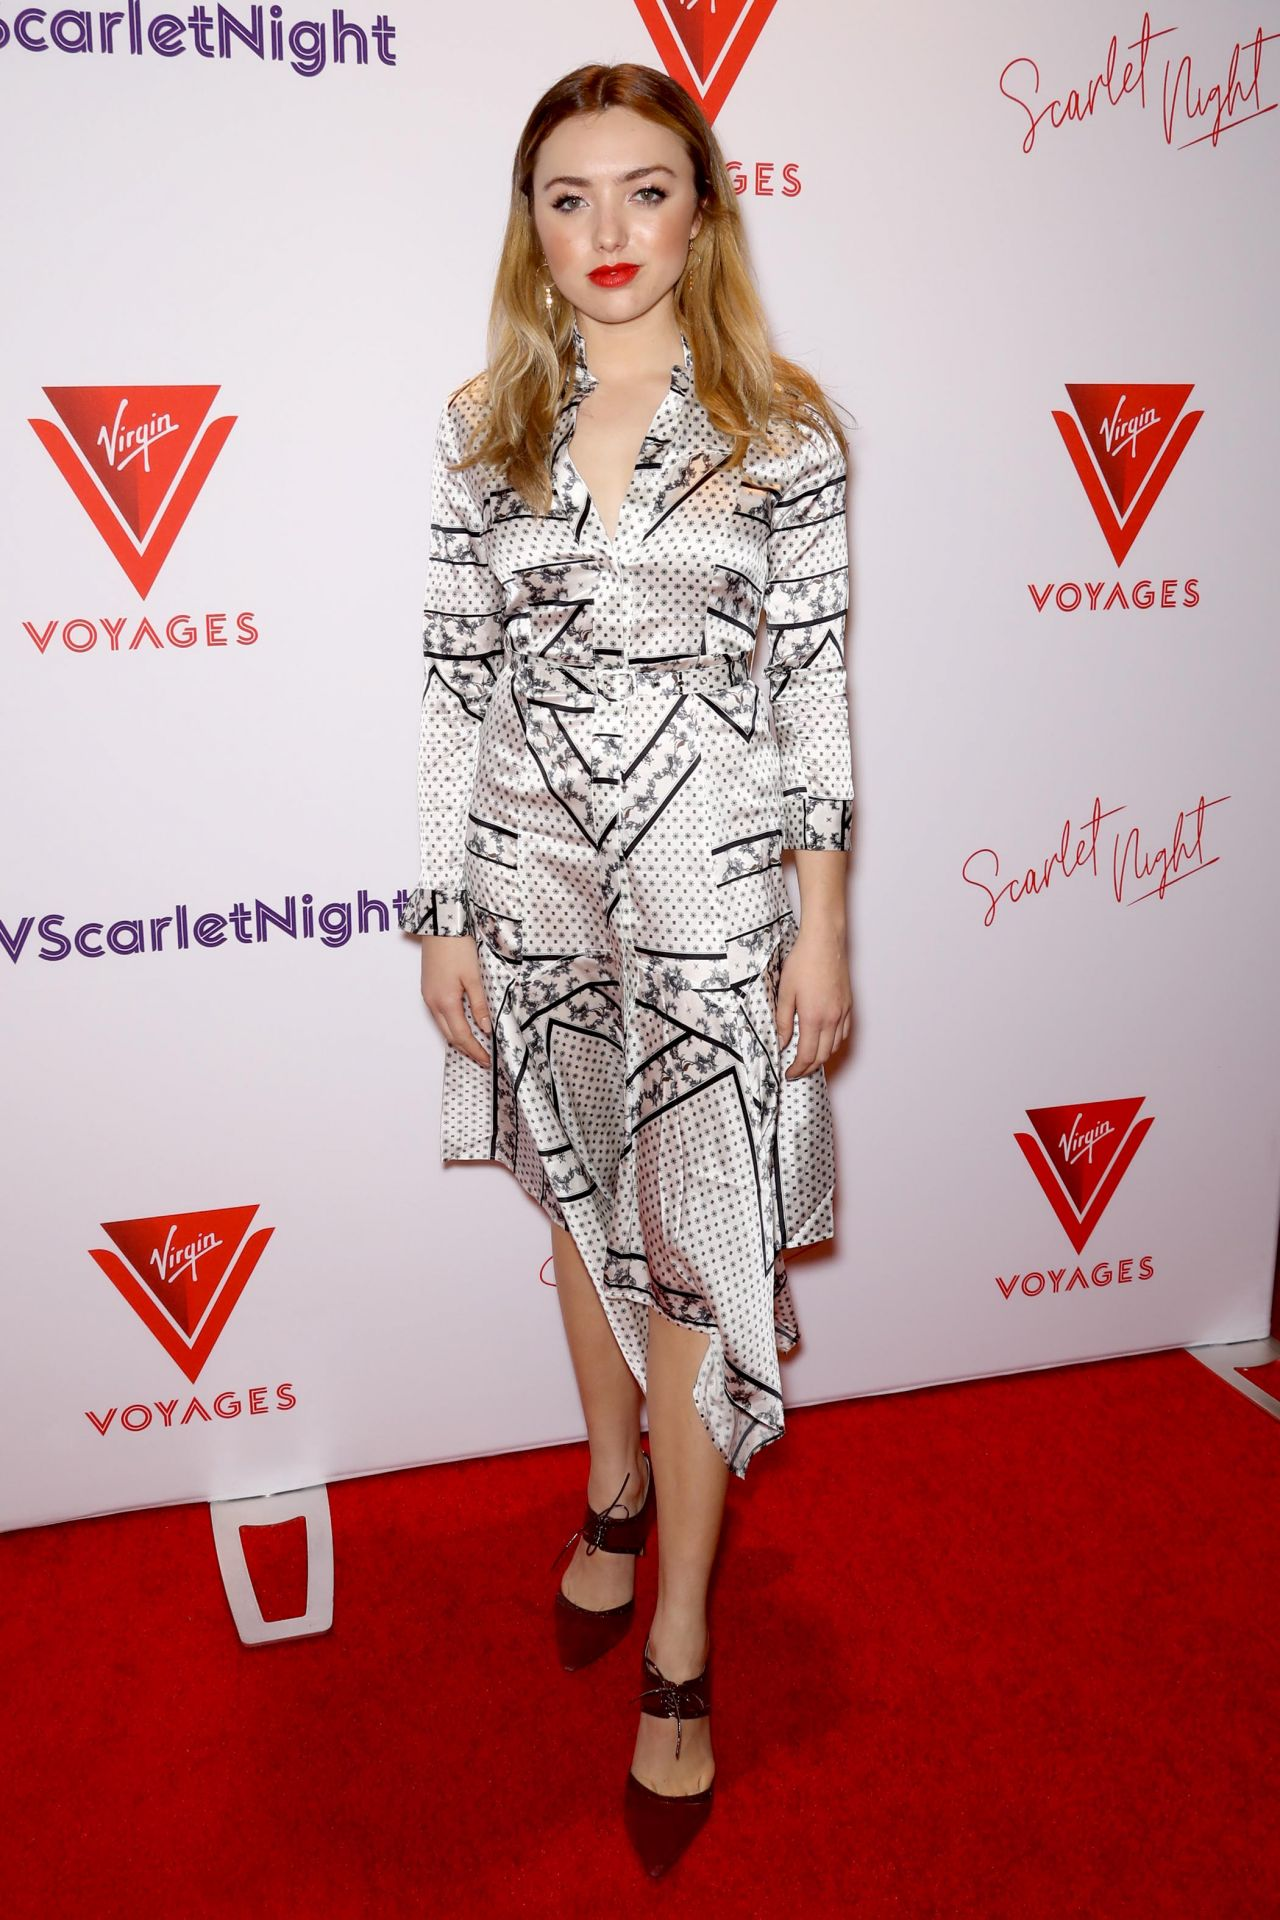 Peyton List Scarlet Night Party In Nyc 02 14 2019